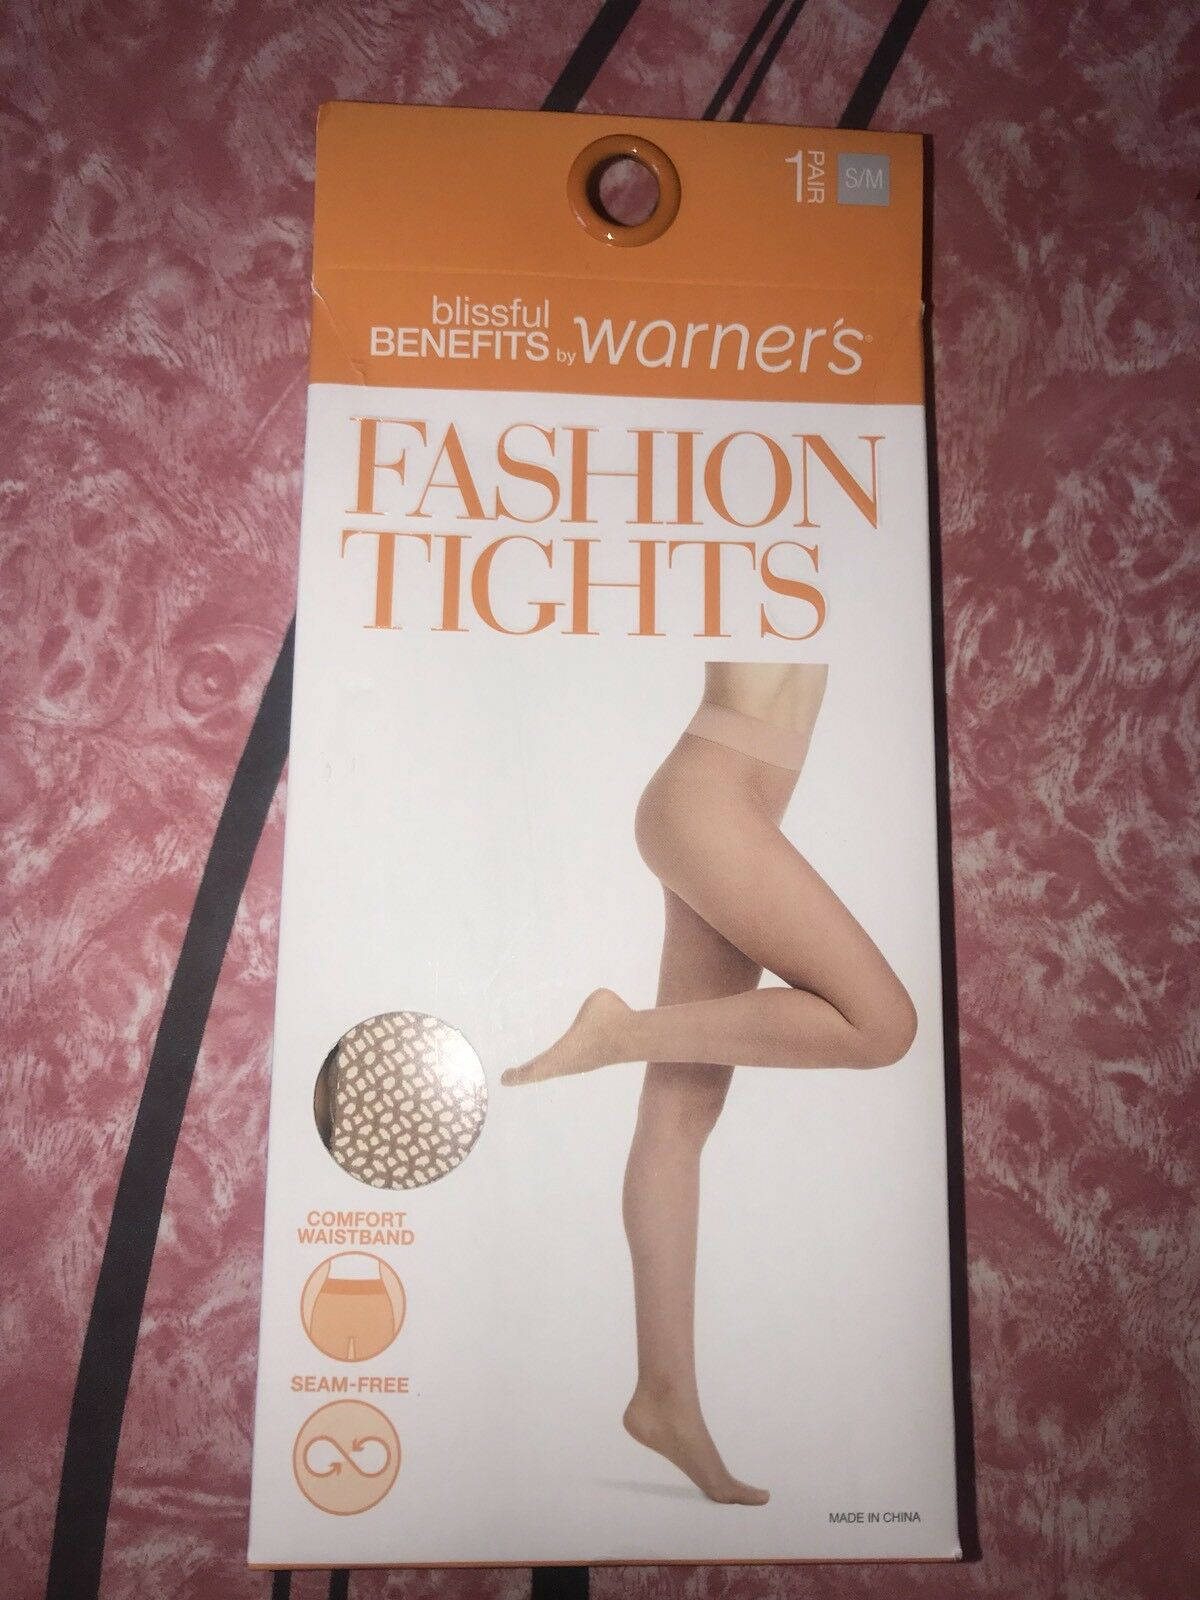 bd30fb9cdae85 1 S/m Warner's Fashion Tights Women's Textured Blissful Benefits Hose Nude  for sale online | eBay